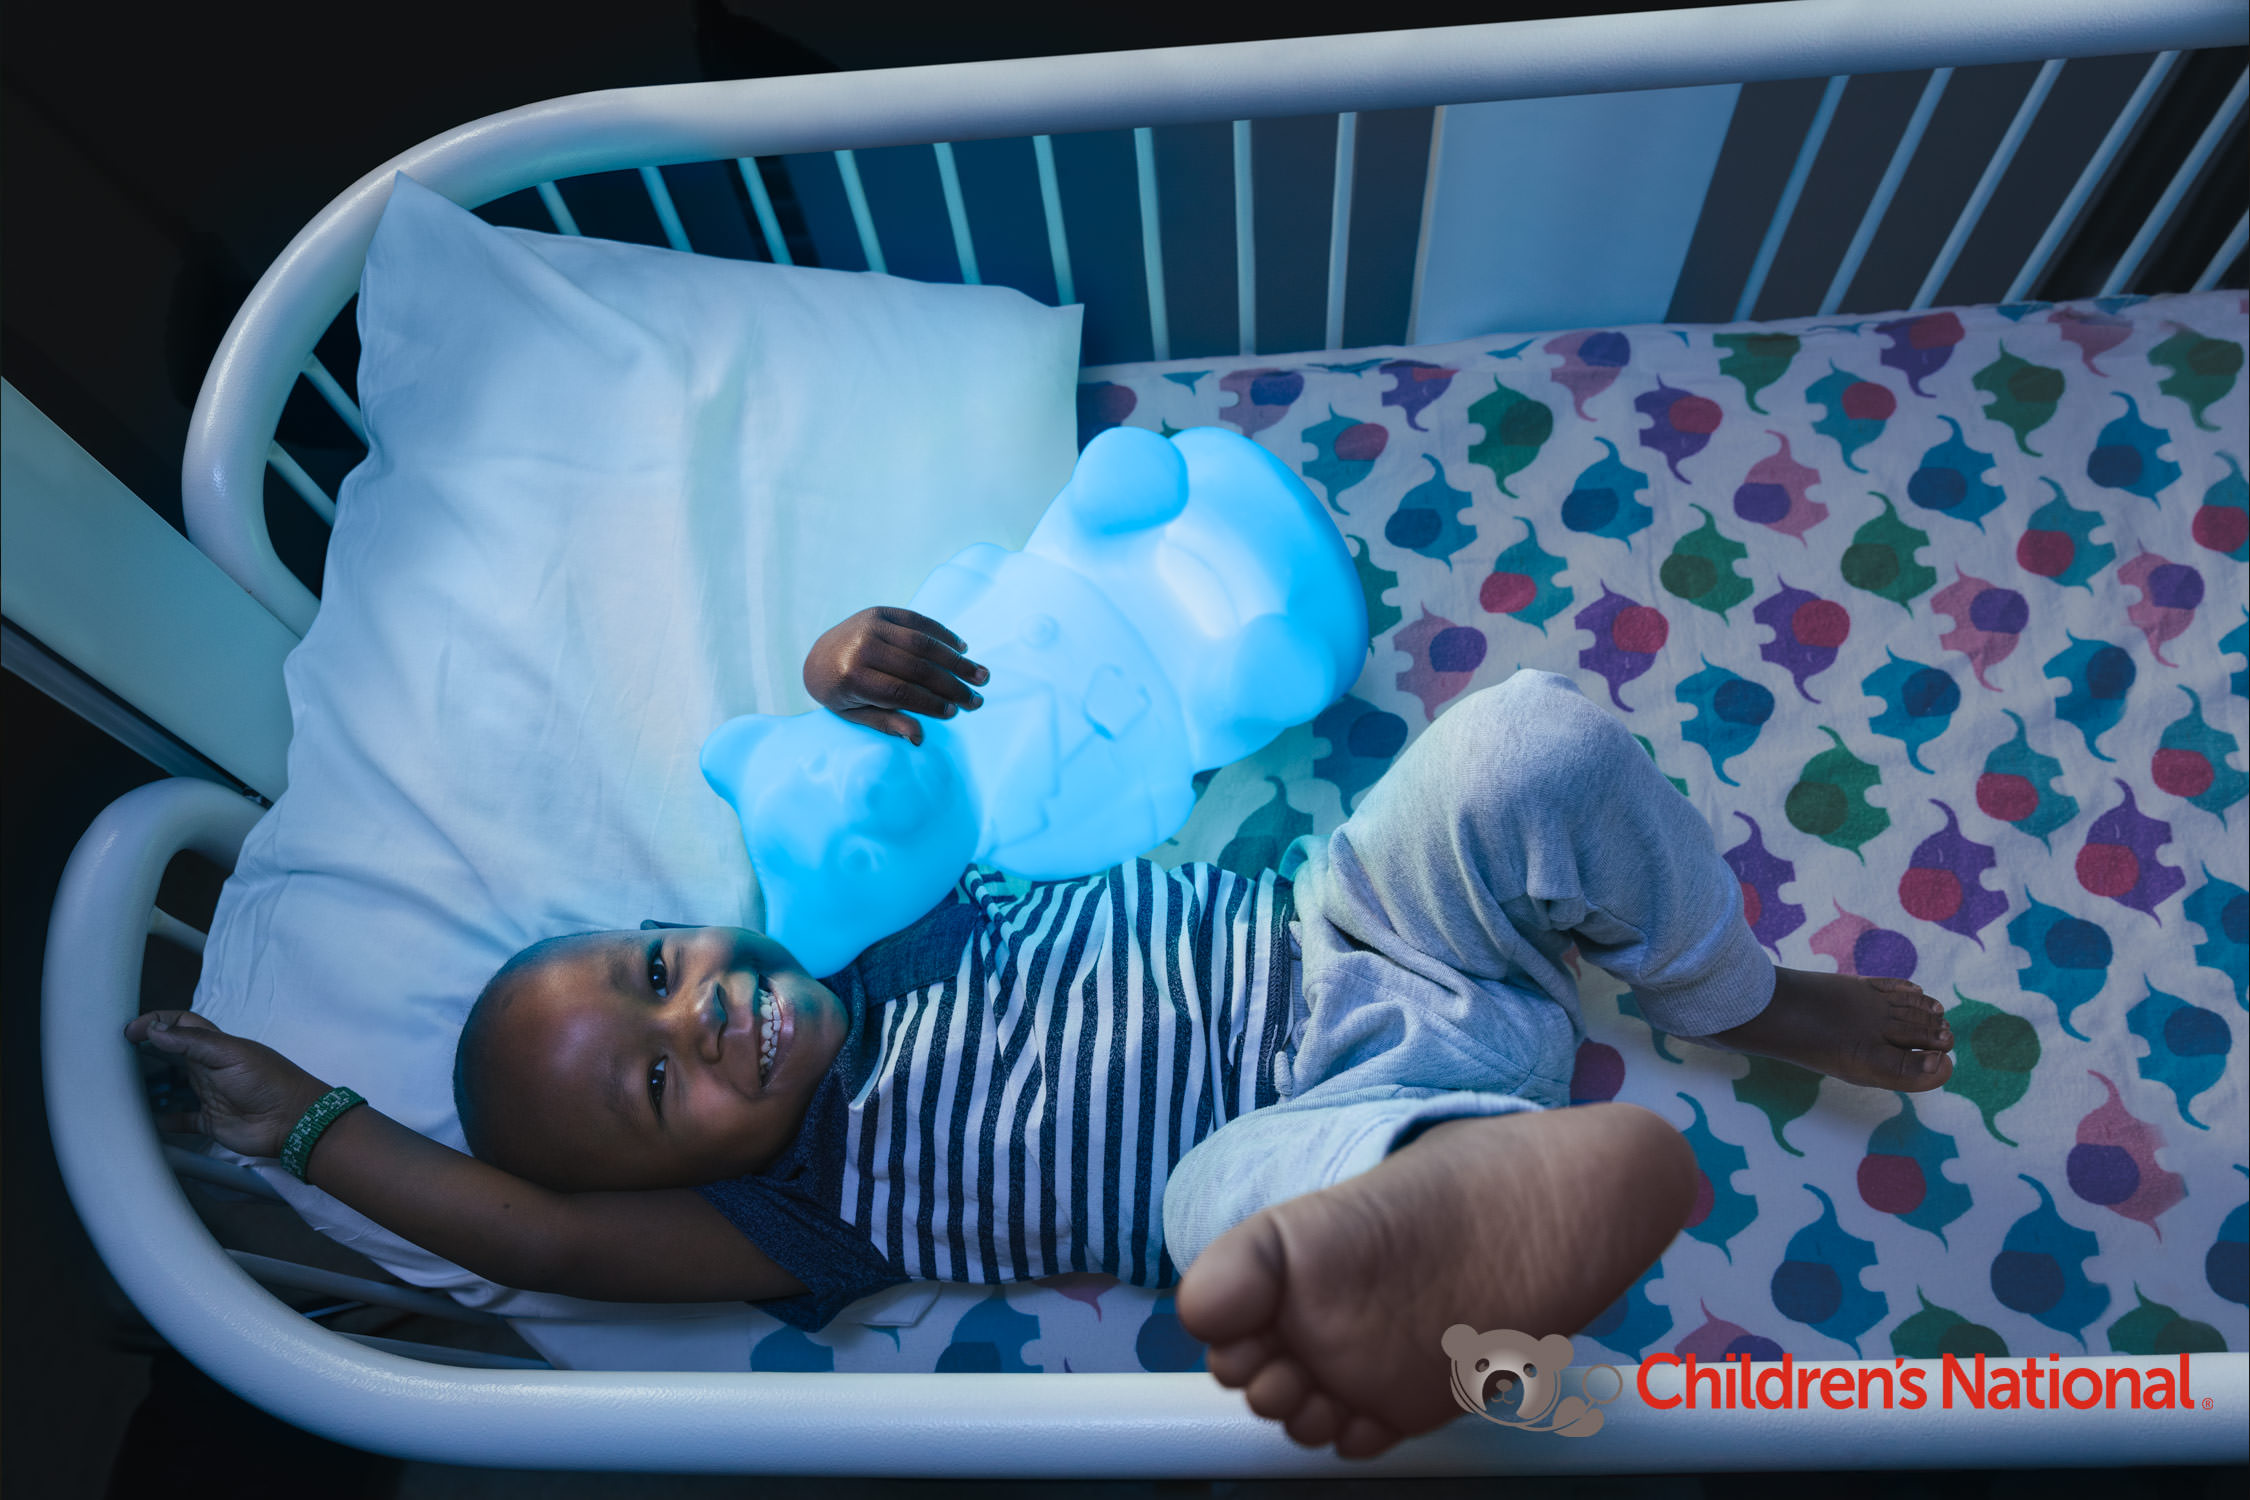 boy holding glowing bear in hospital bed, washington dc commercial photography